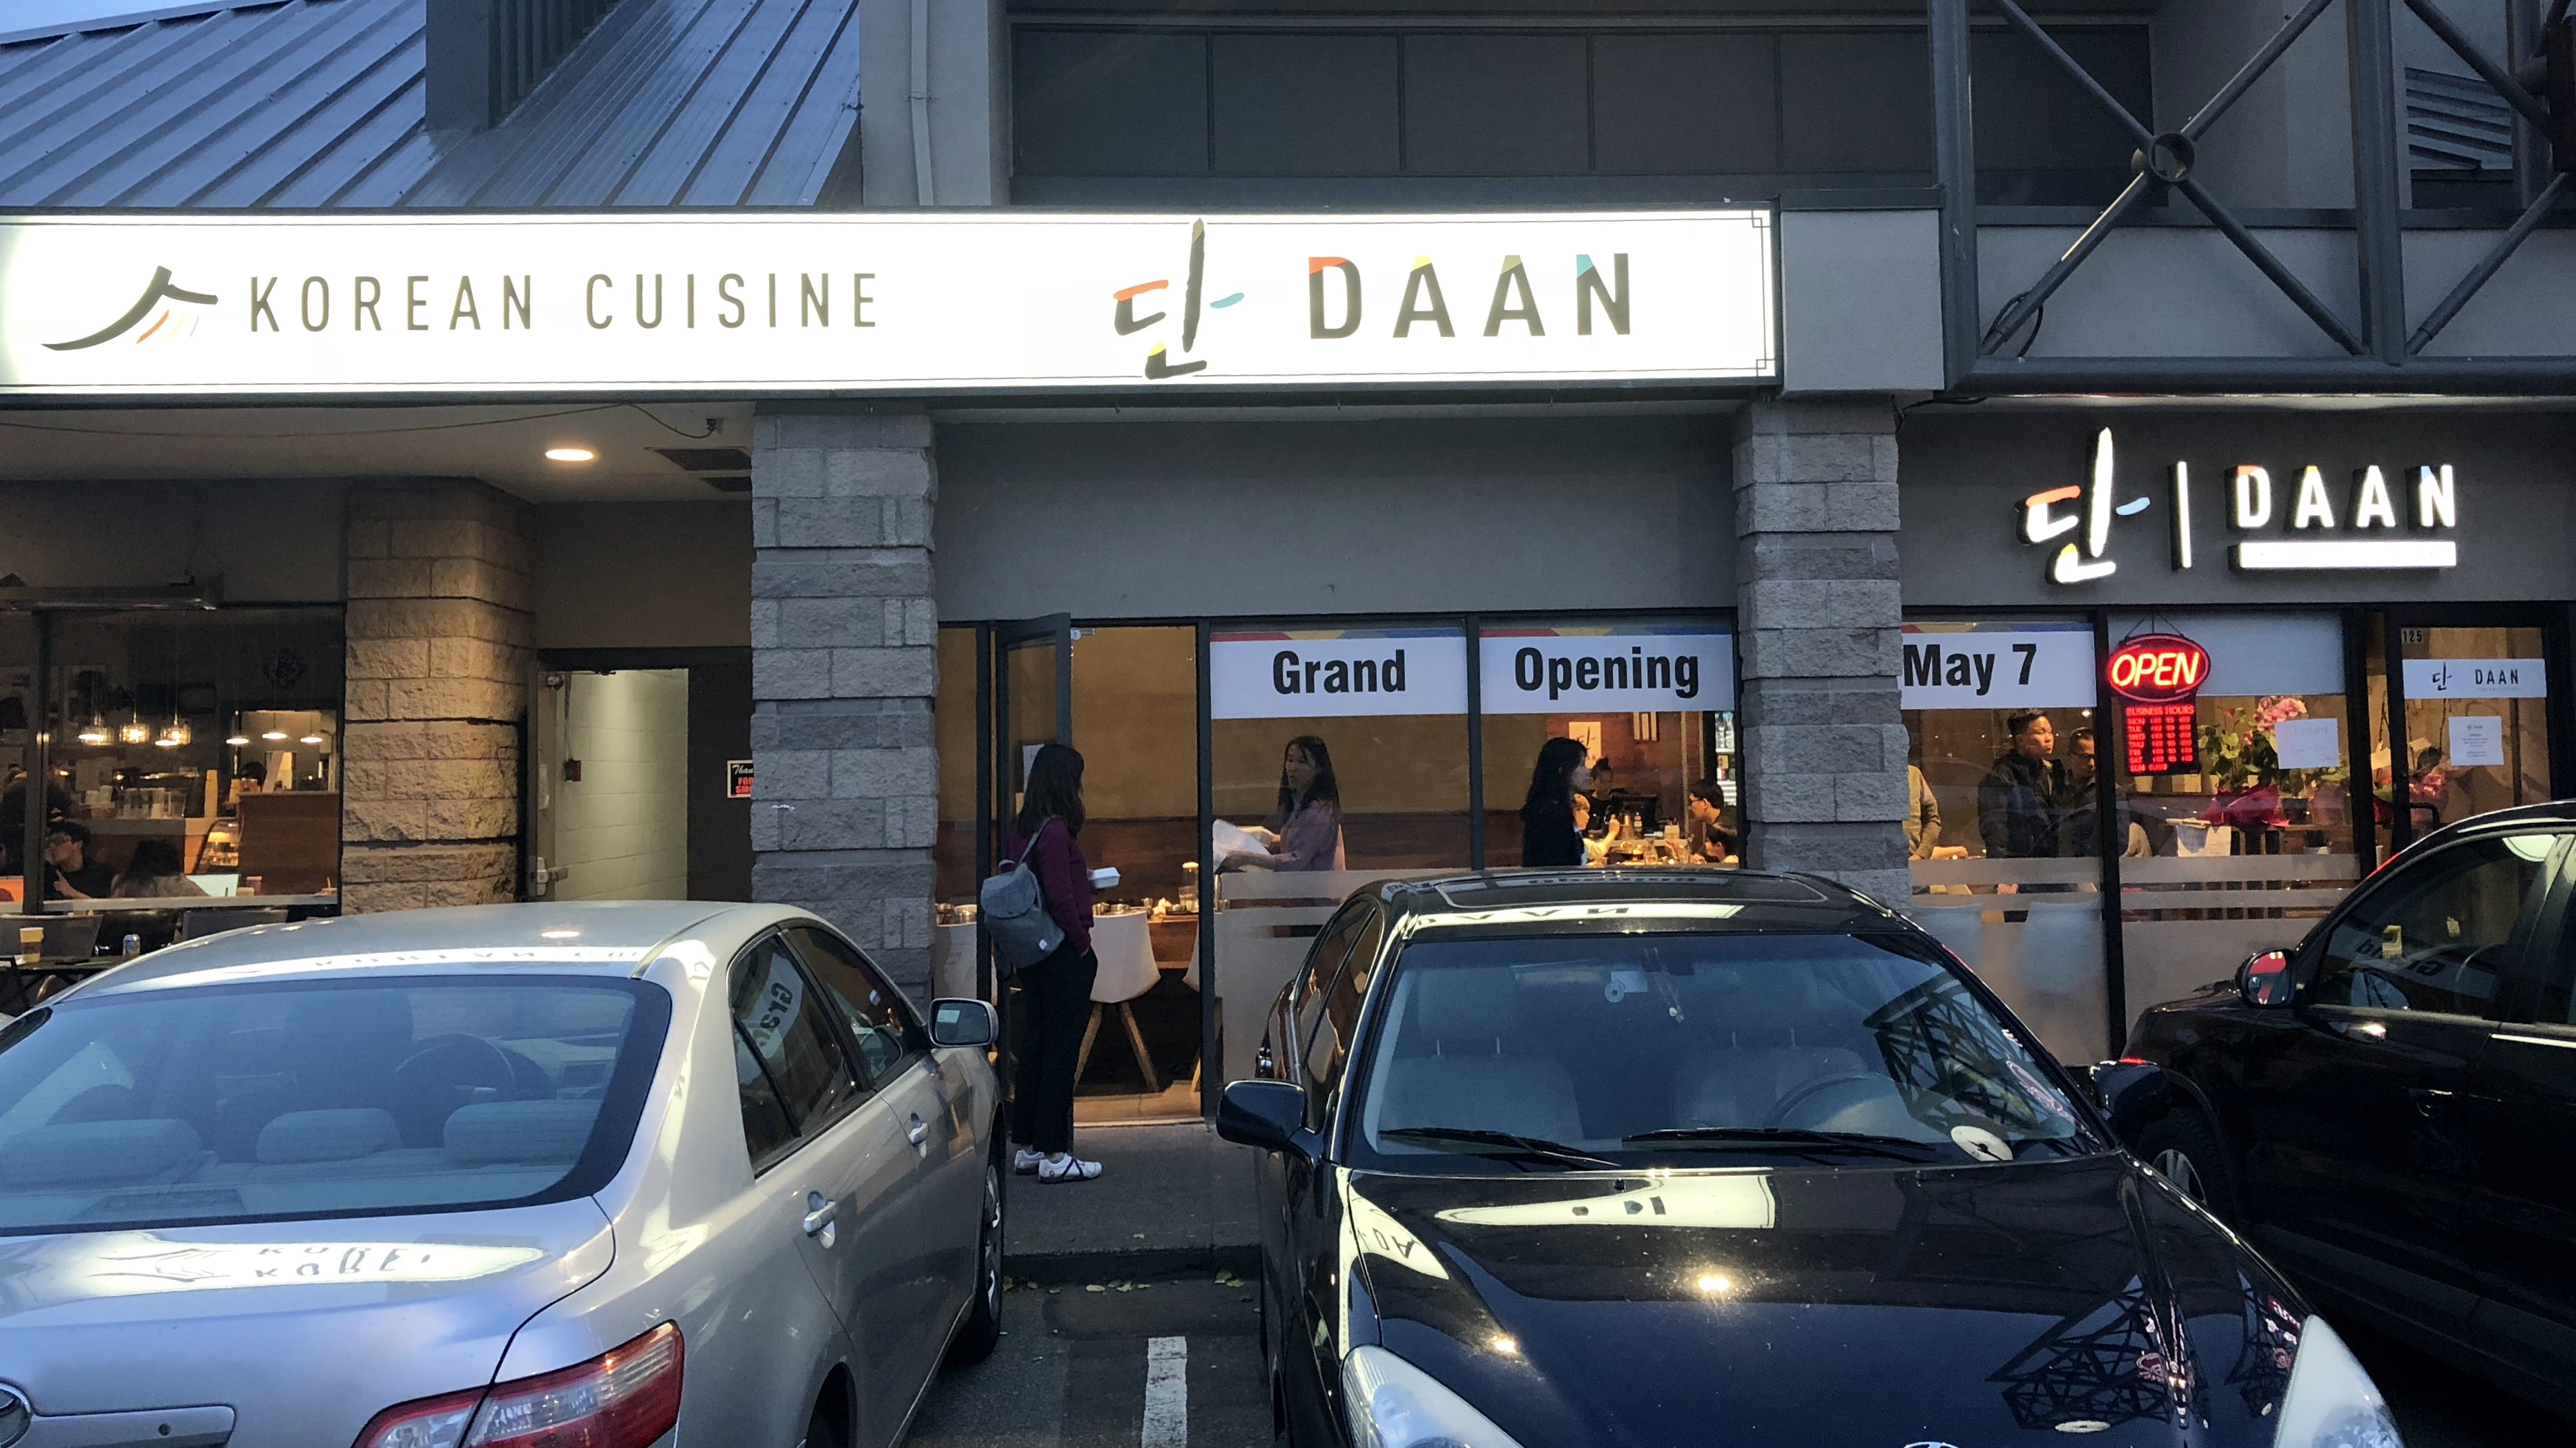 Daan Korean Cuisine